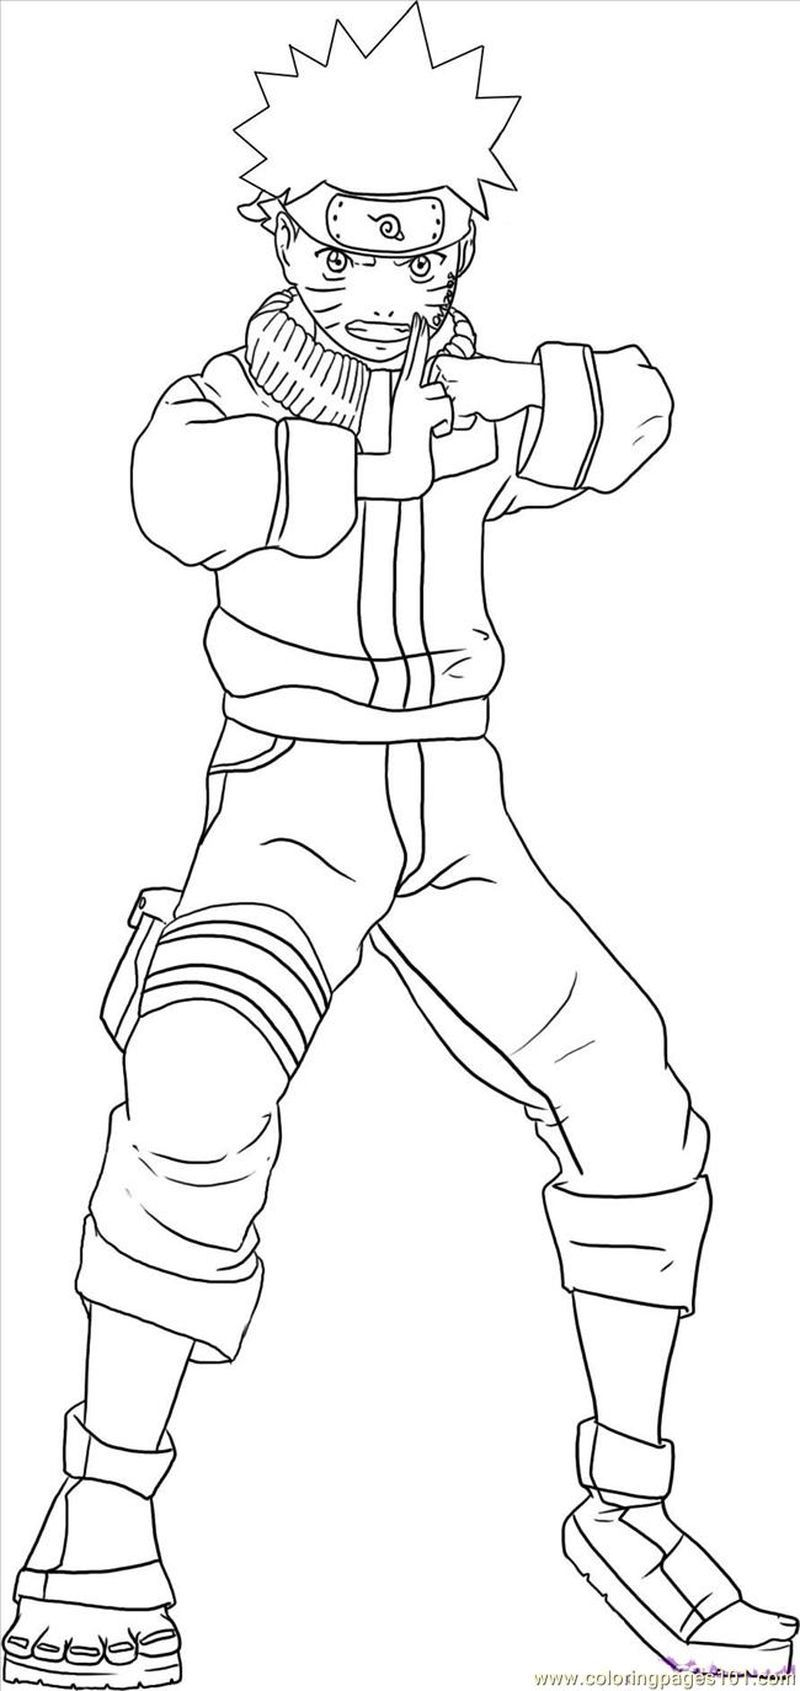 Have Fun With These Naruto Coloring Pages Ideas Free Coloring Sheets Naruto Coloring Pages Coloring Pages To Print Online Coloring Pages